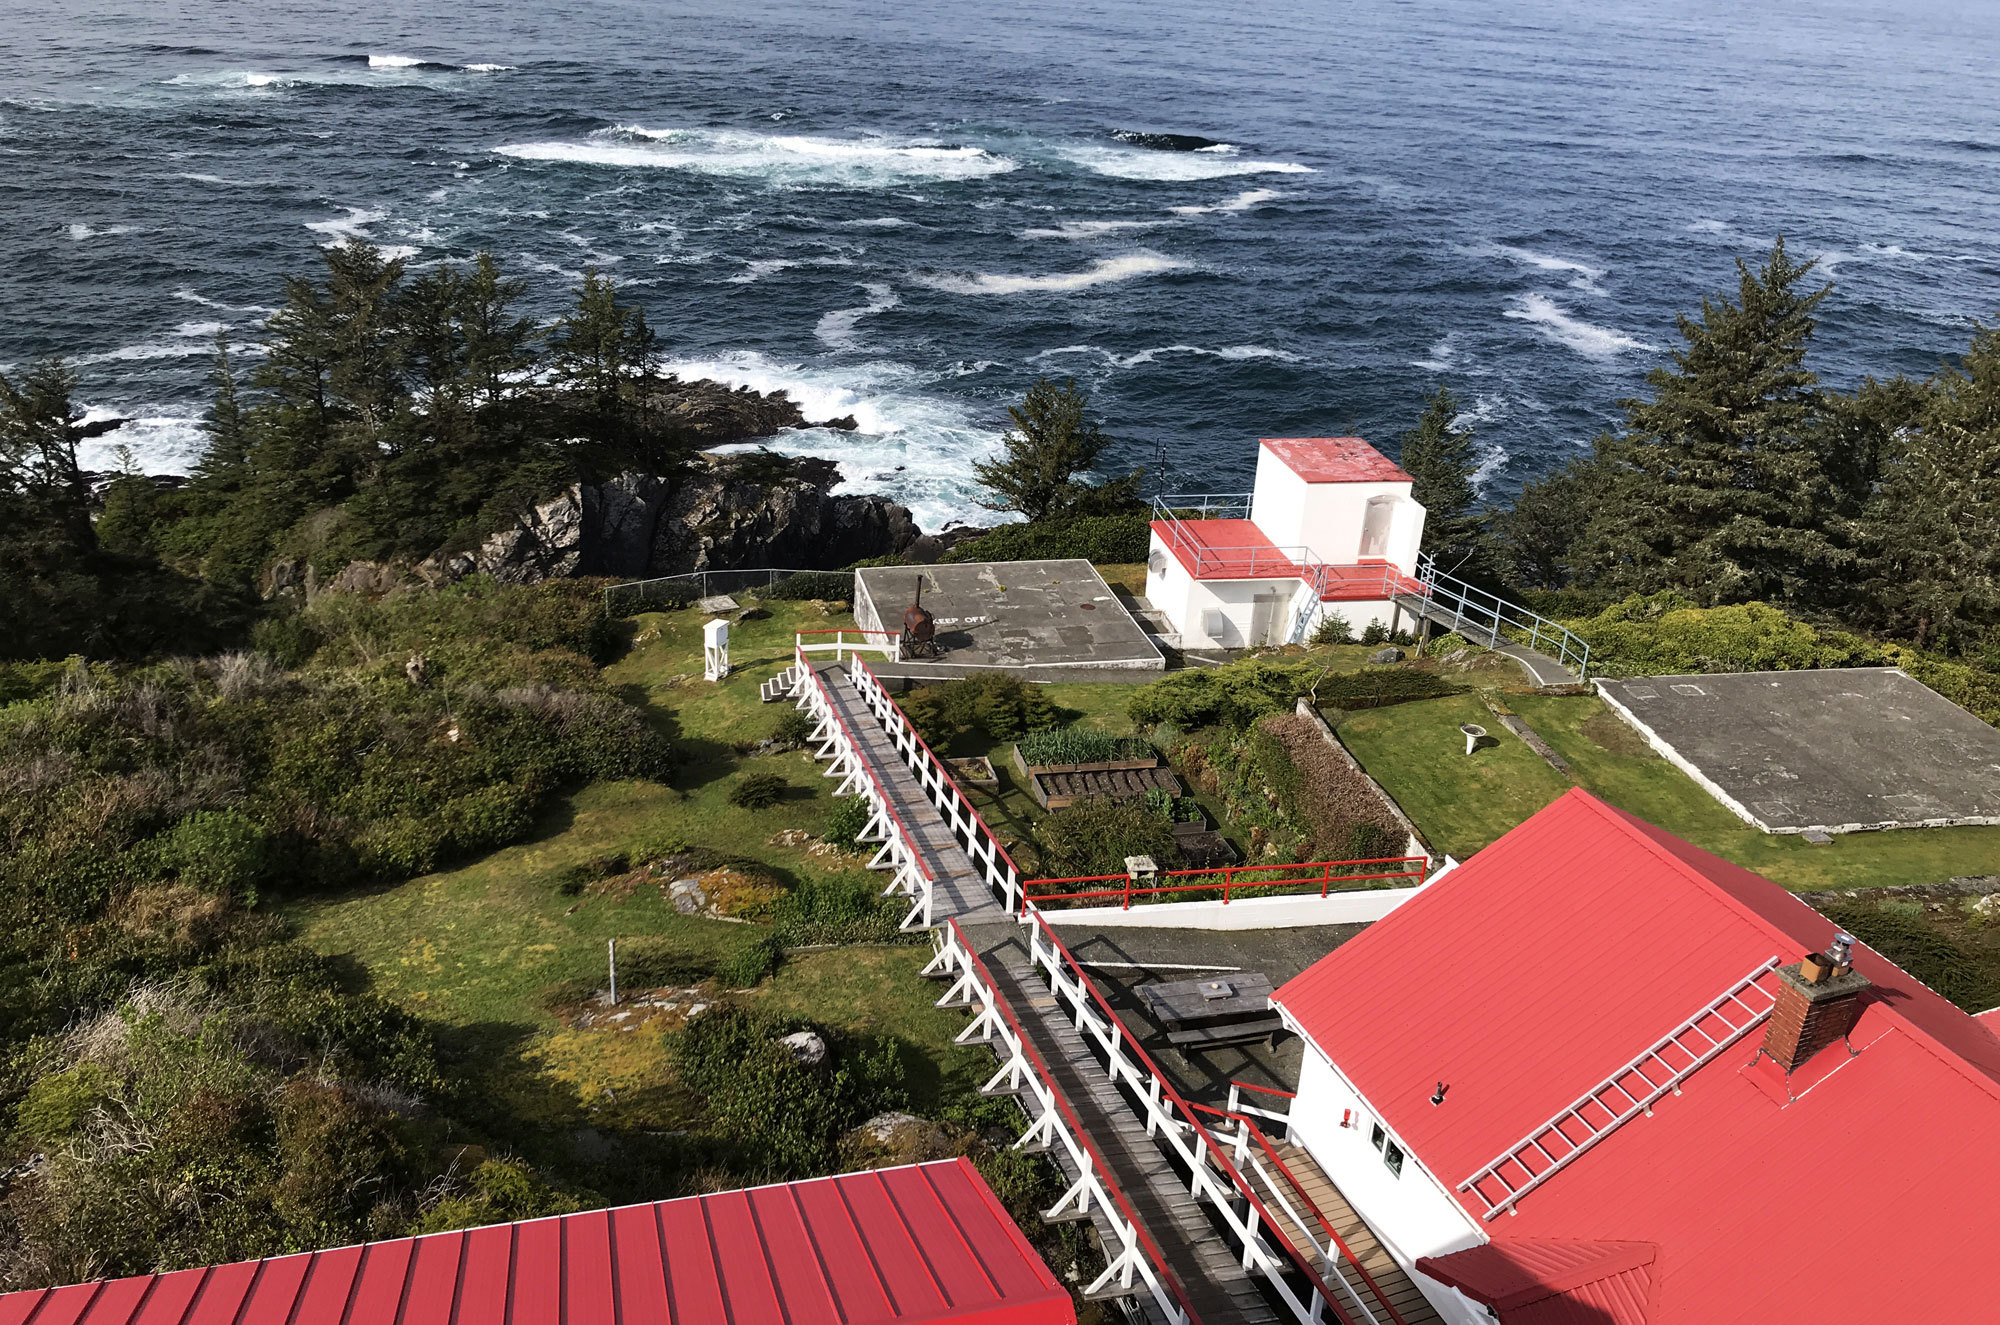 The view from 51 metres above sea level at the top of the tower of the Cape Beale Lighthouse. (Megan Thomas/CBC)